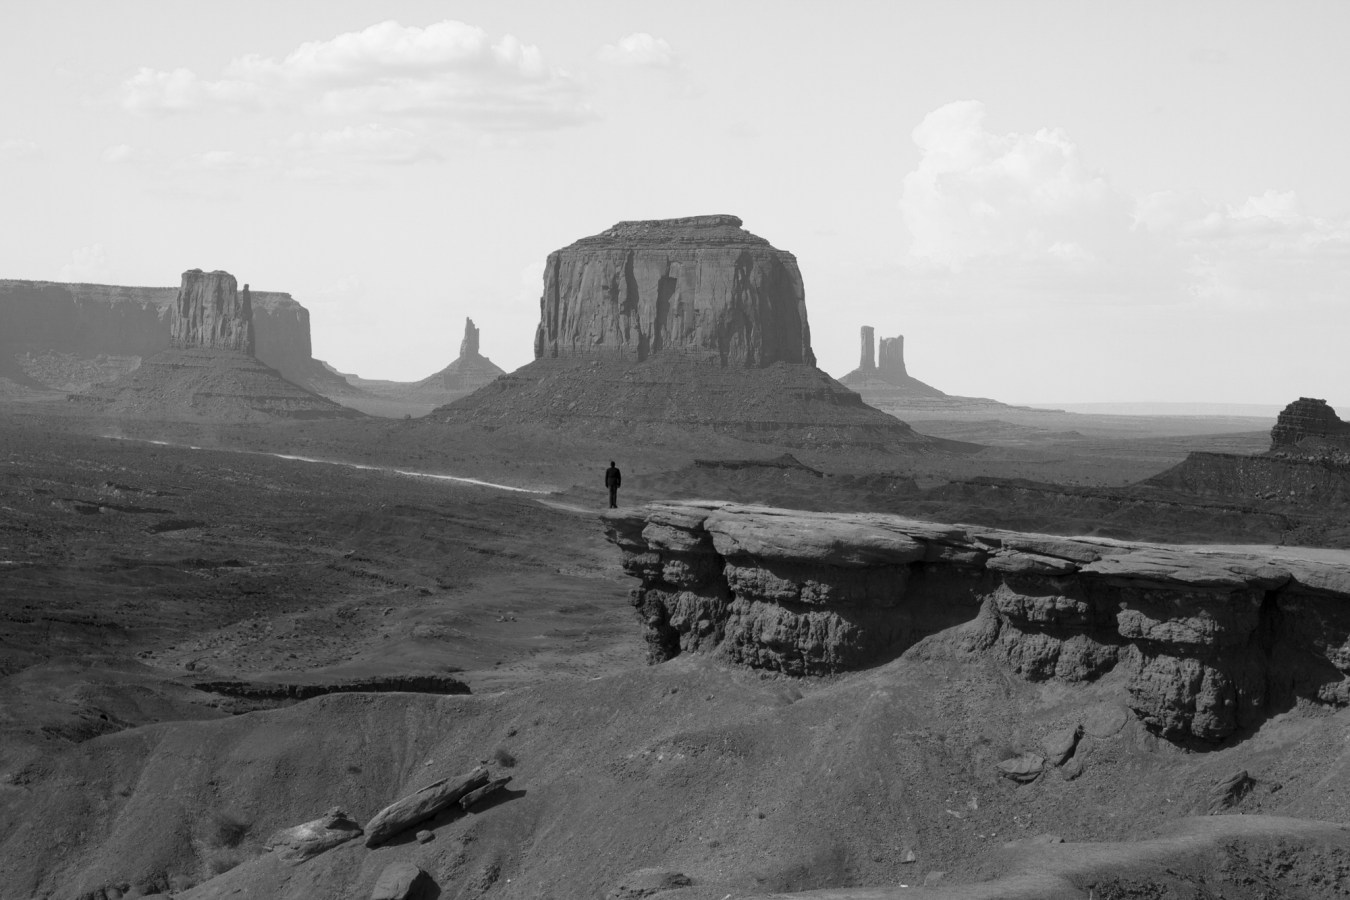 Black and white photograph of lone silhouetted figure in vast landscape of John Ford Point, in Monument Valley.